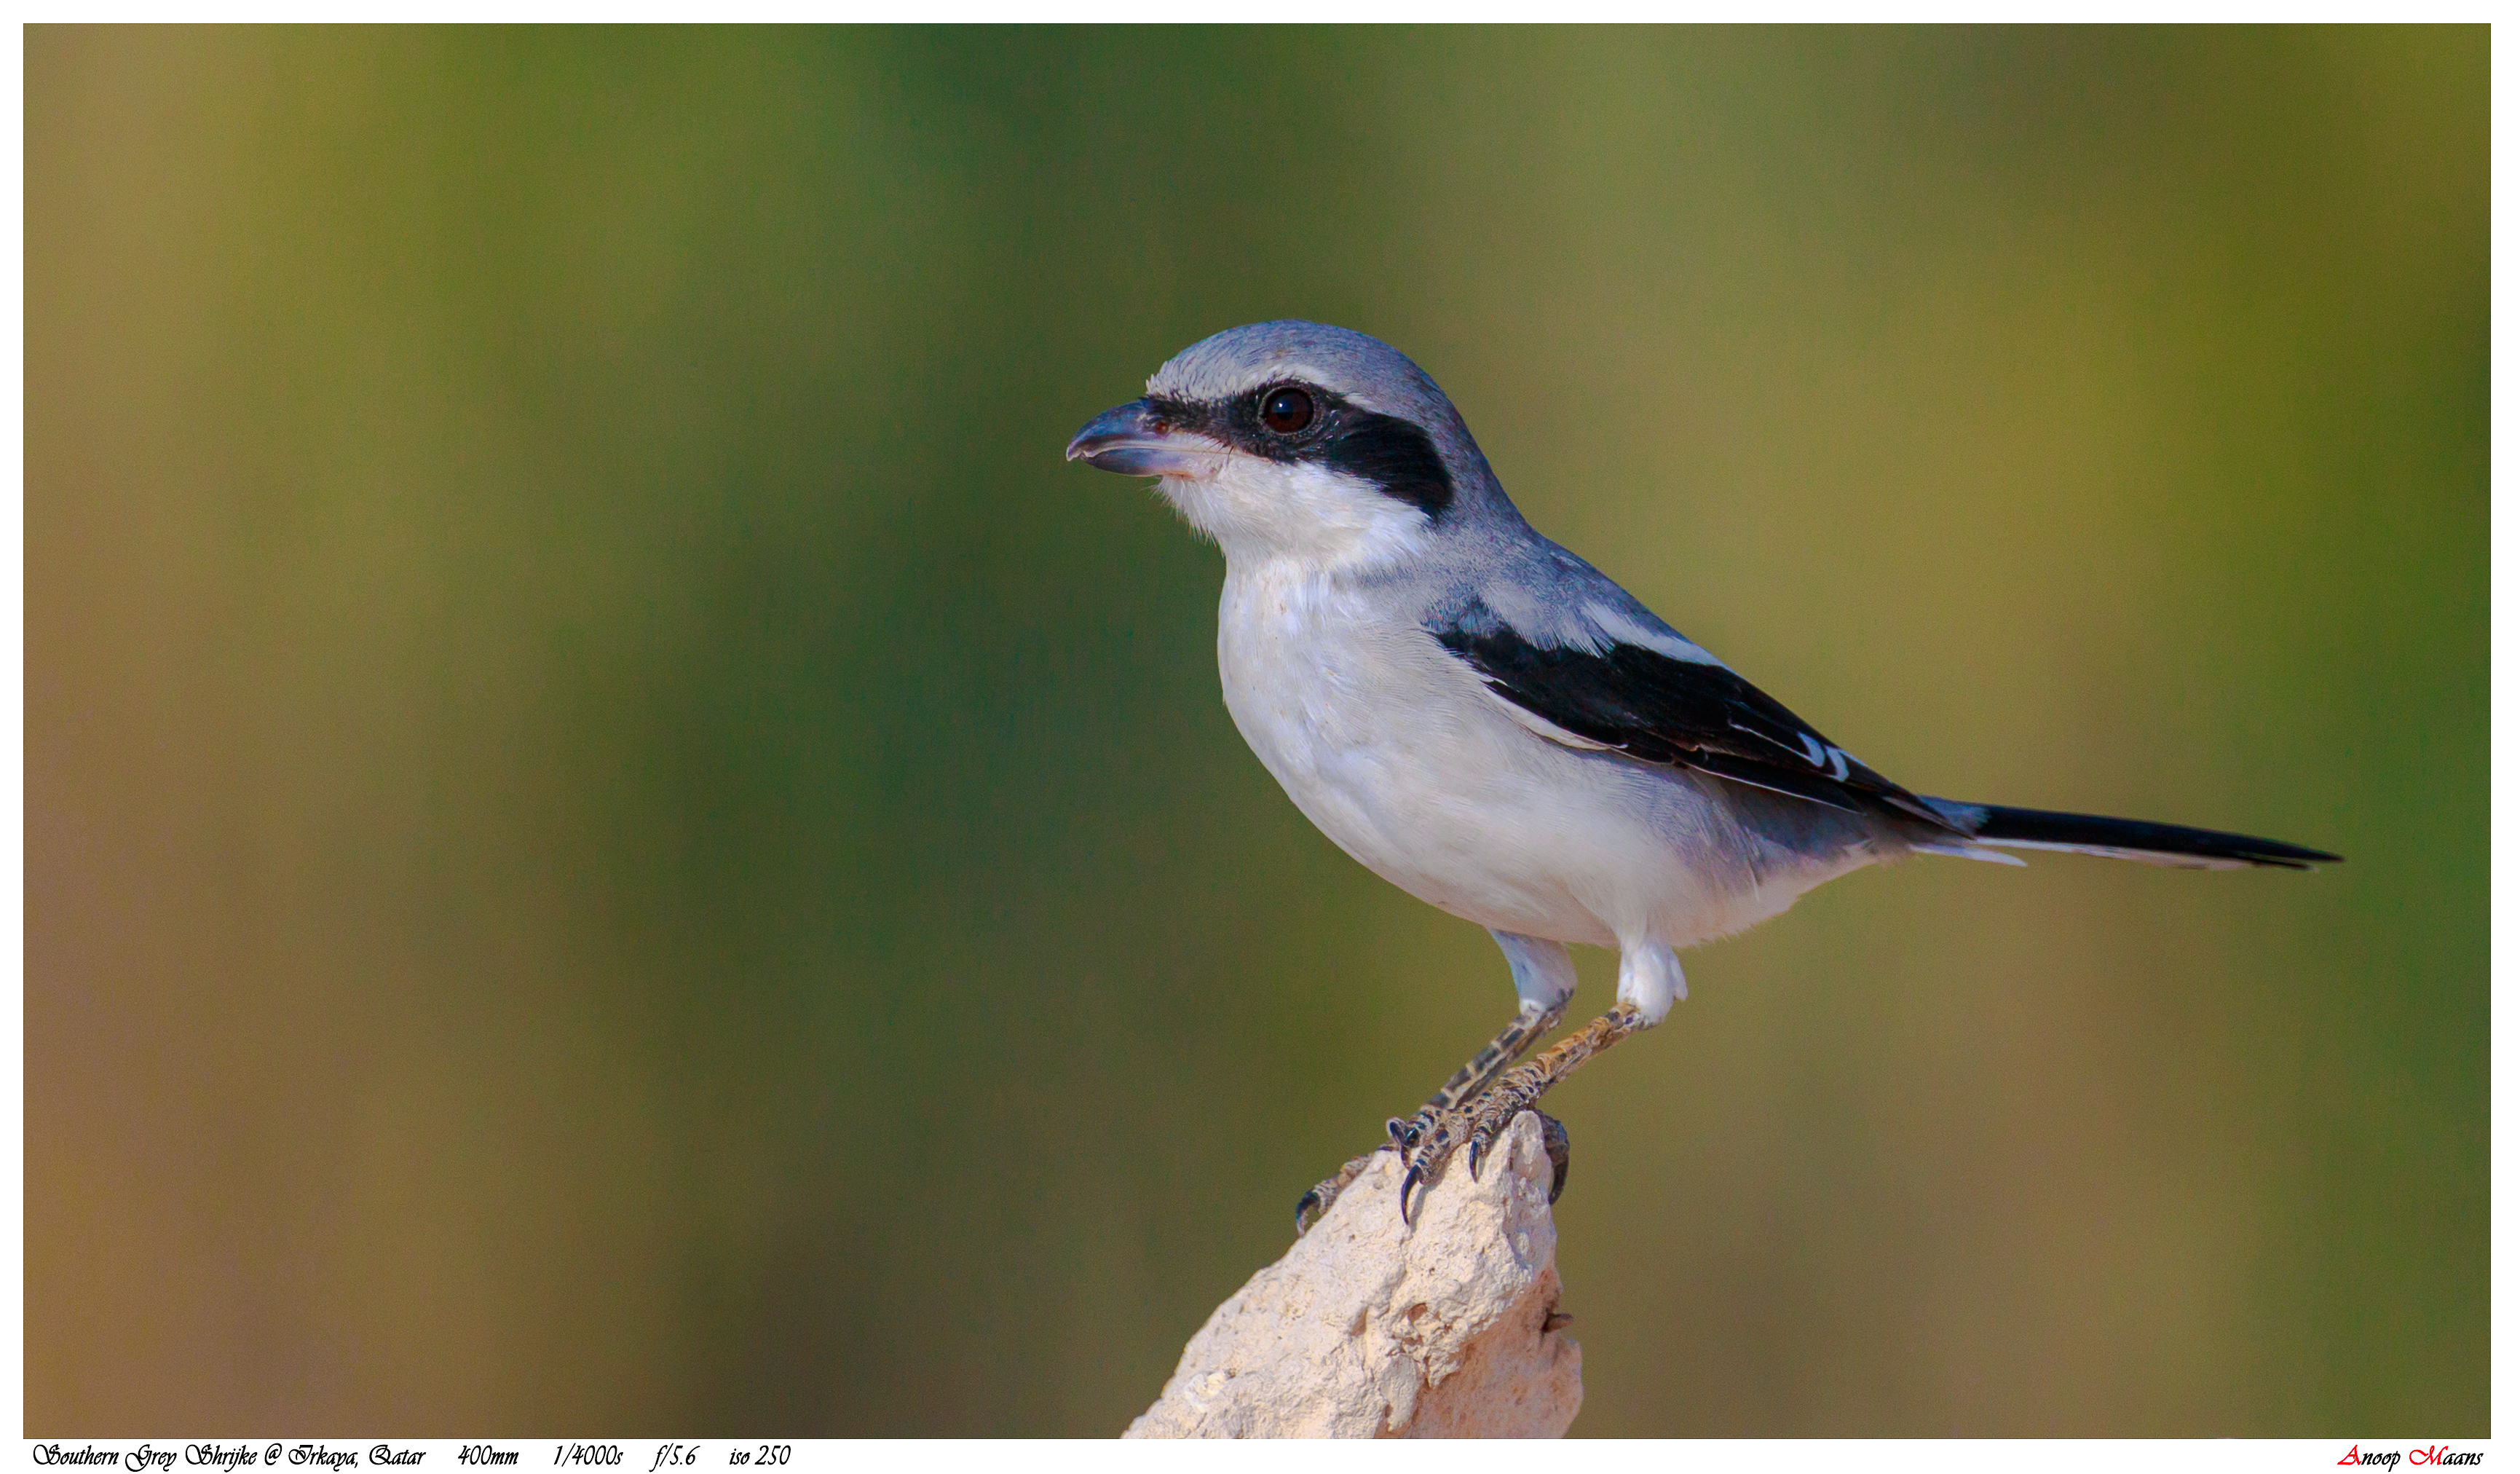 Shrike, Southern Grey